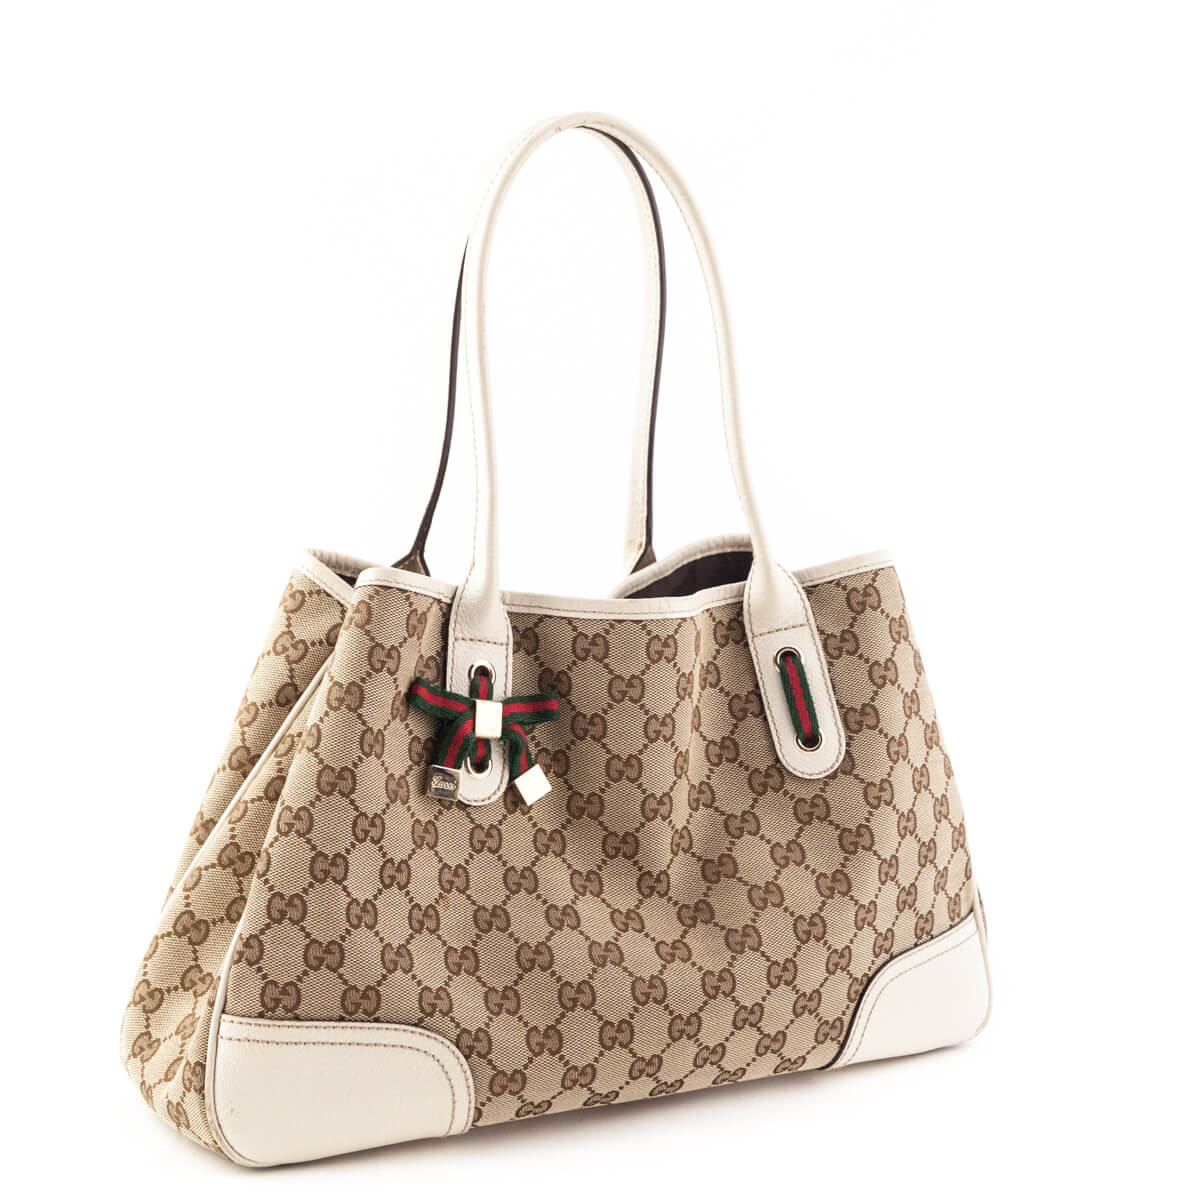 ea7ae968010 ... Gucci Cream Monogram Canvas Princy Tote - LOVE that BAG - Preowned  Authentic Designer Handbags ...